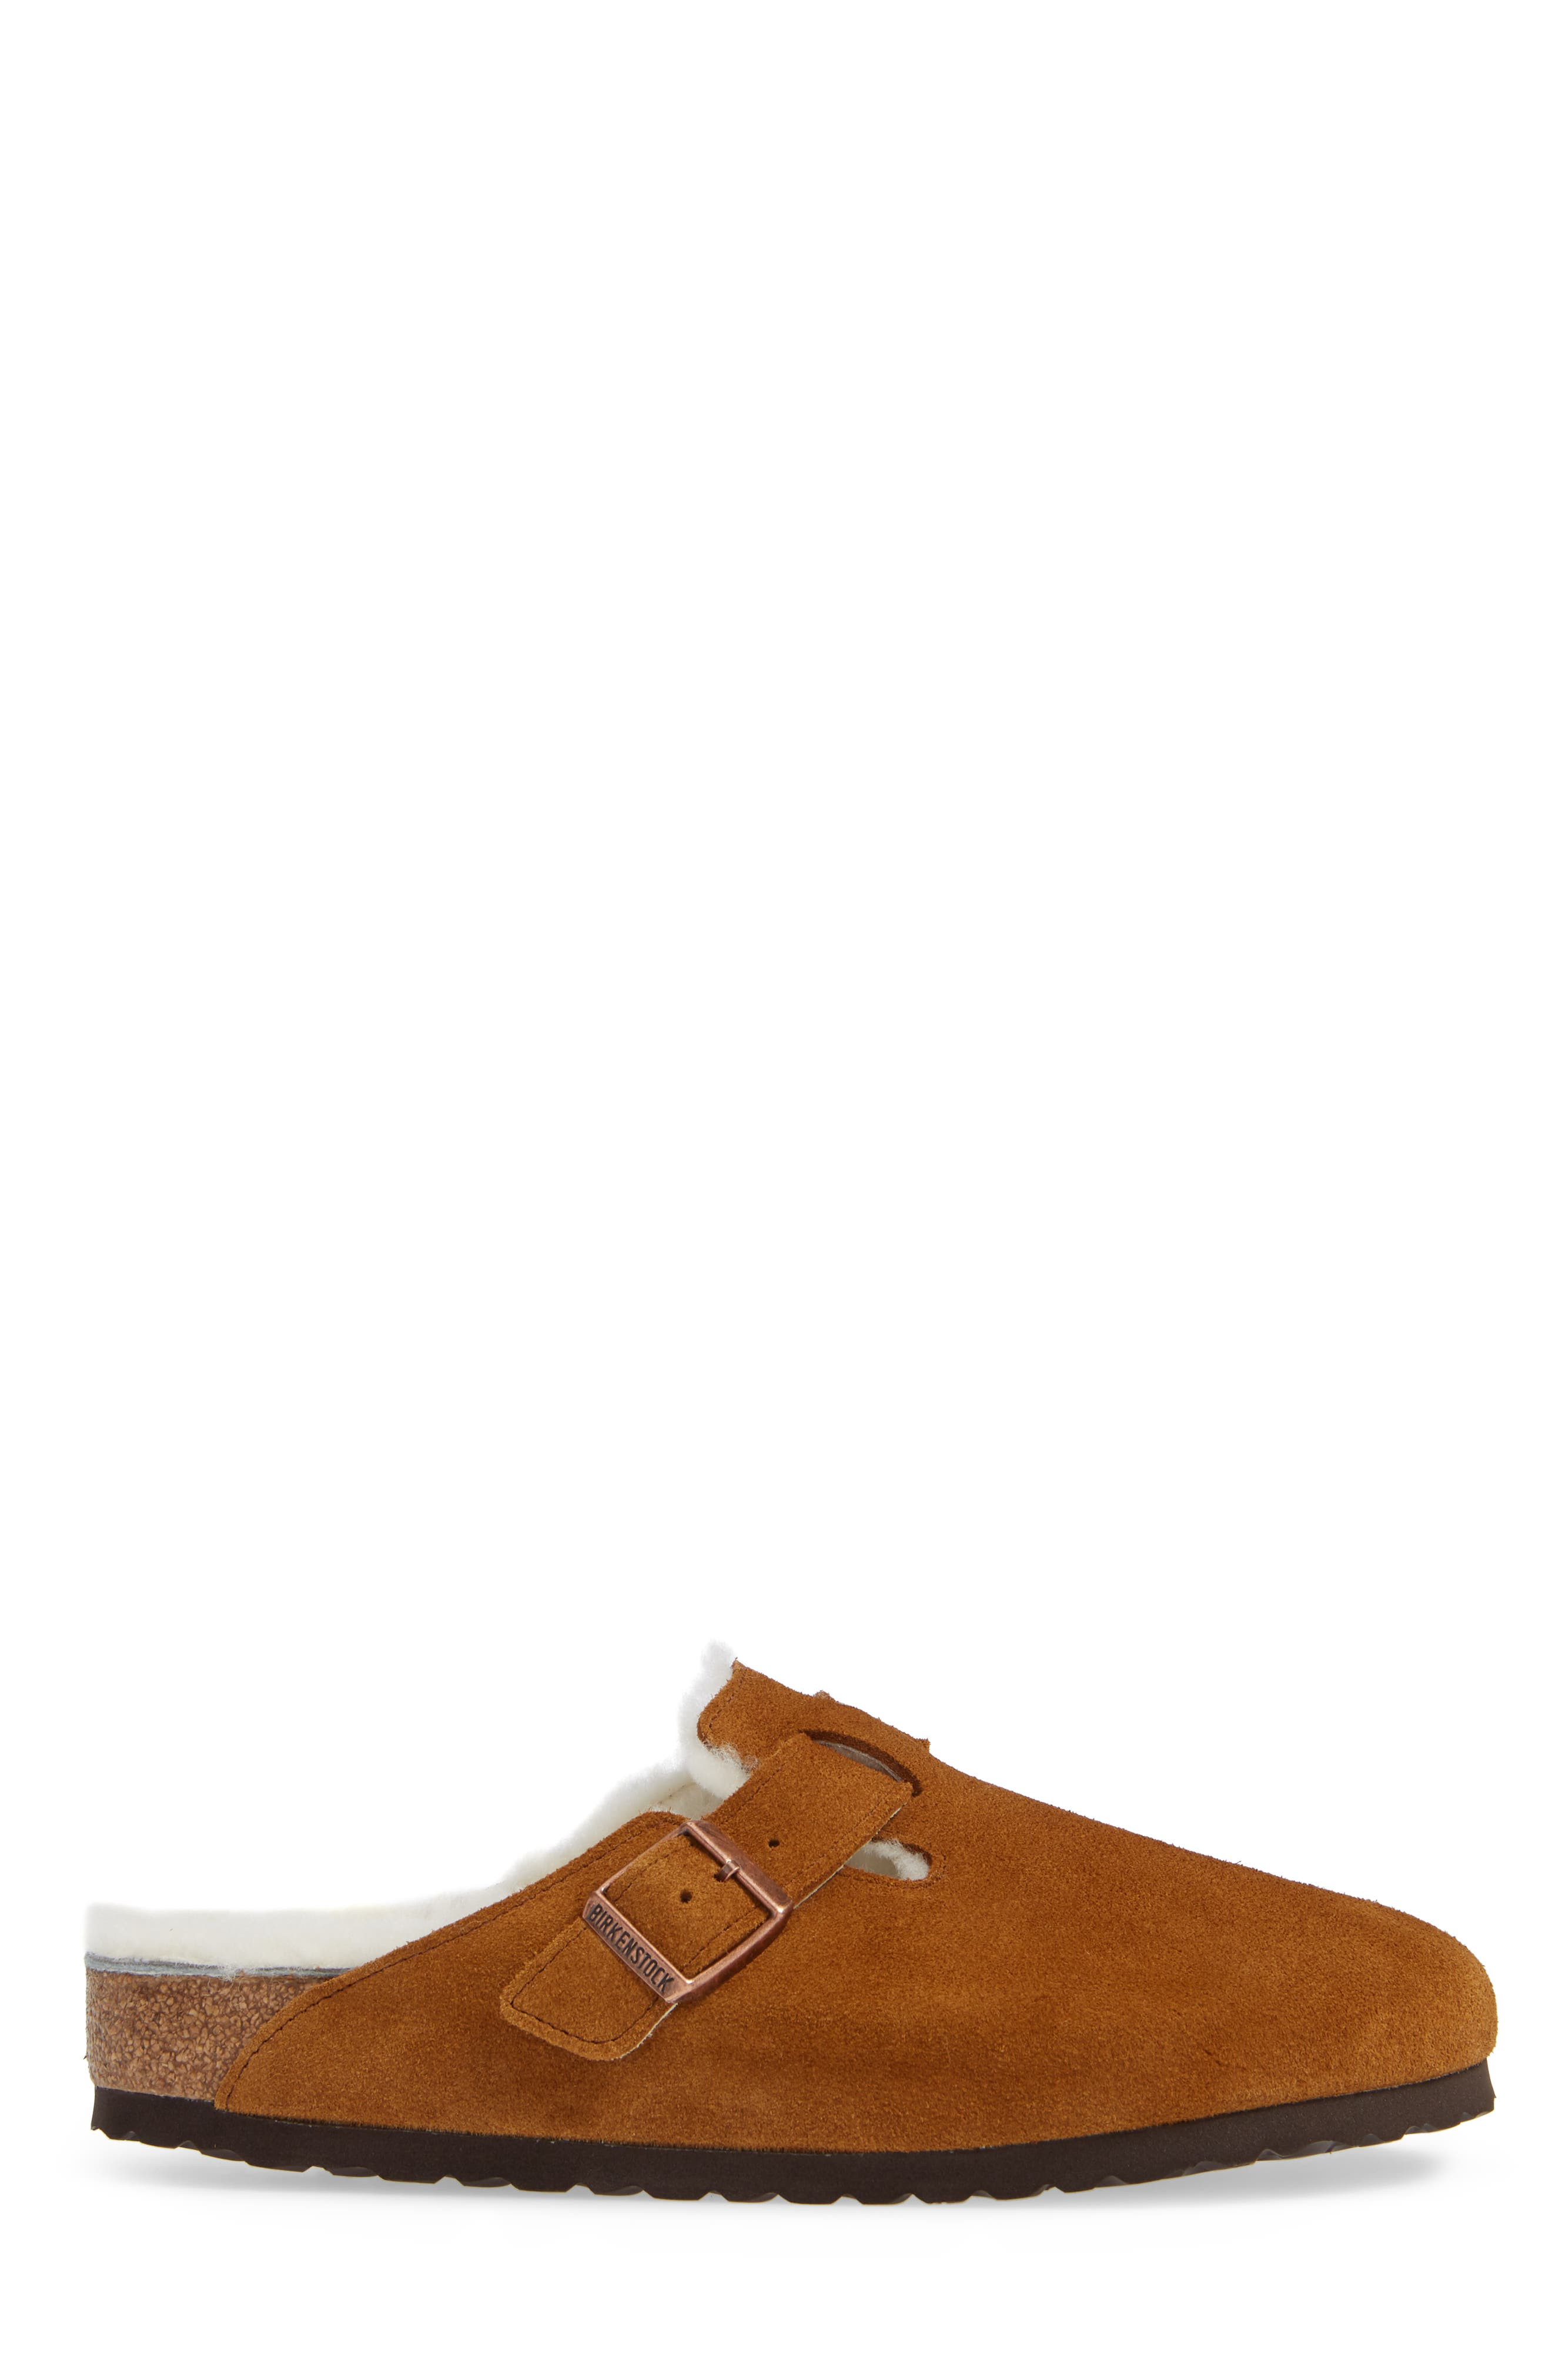 Boston Slip-On with Genuine Shearling Lining,                             Alternate thumbnail 3, color,                             BEIGE